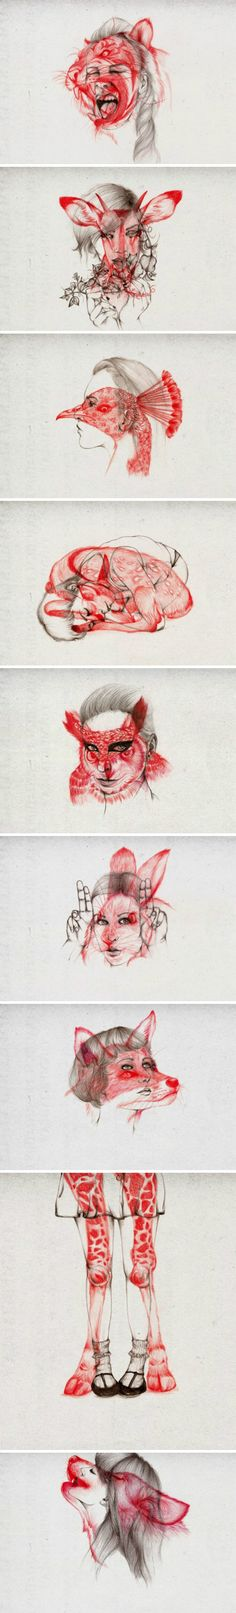 Peony Yip Animal Morphing Illustrations